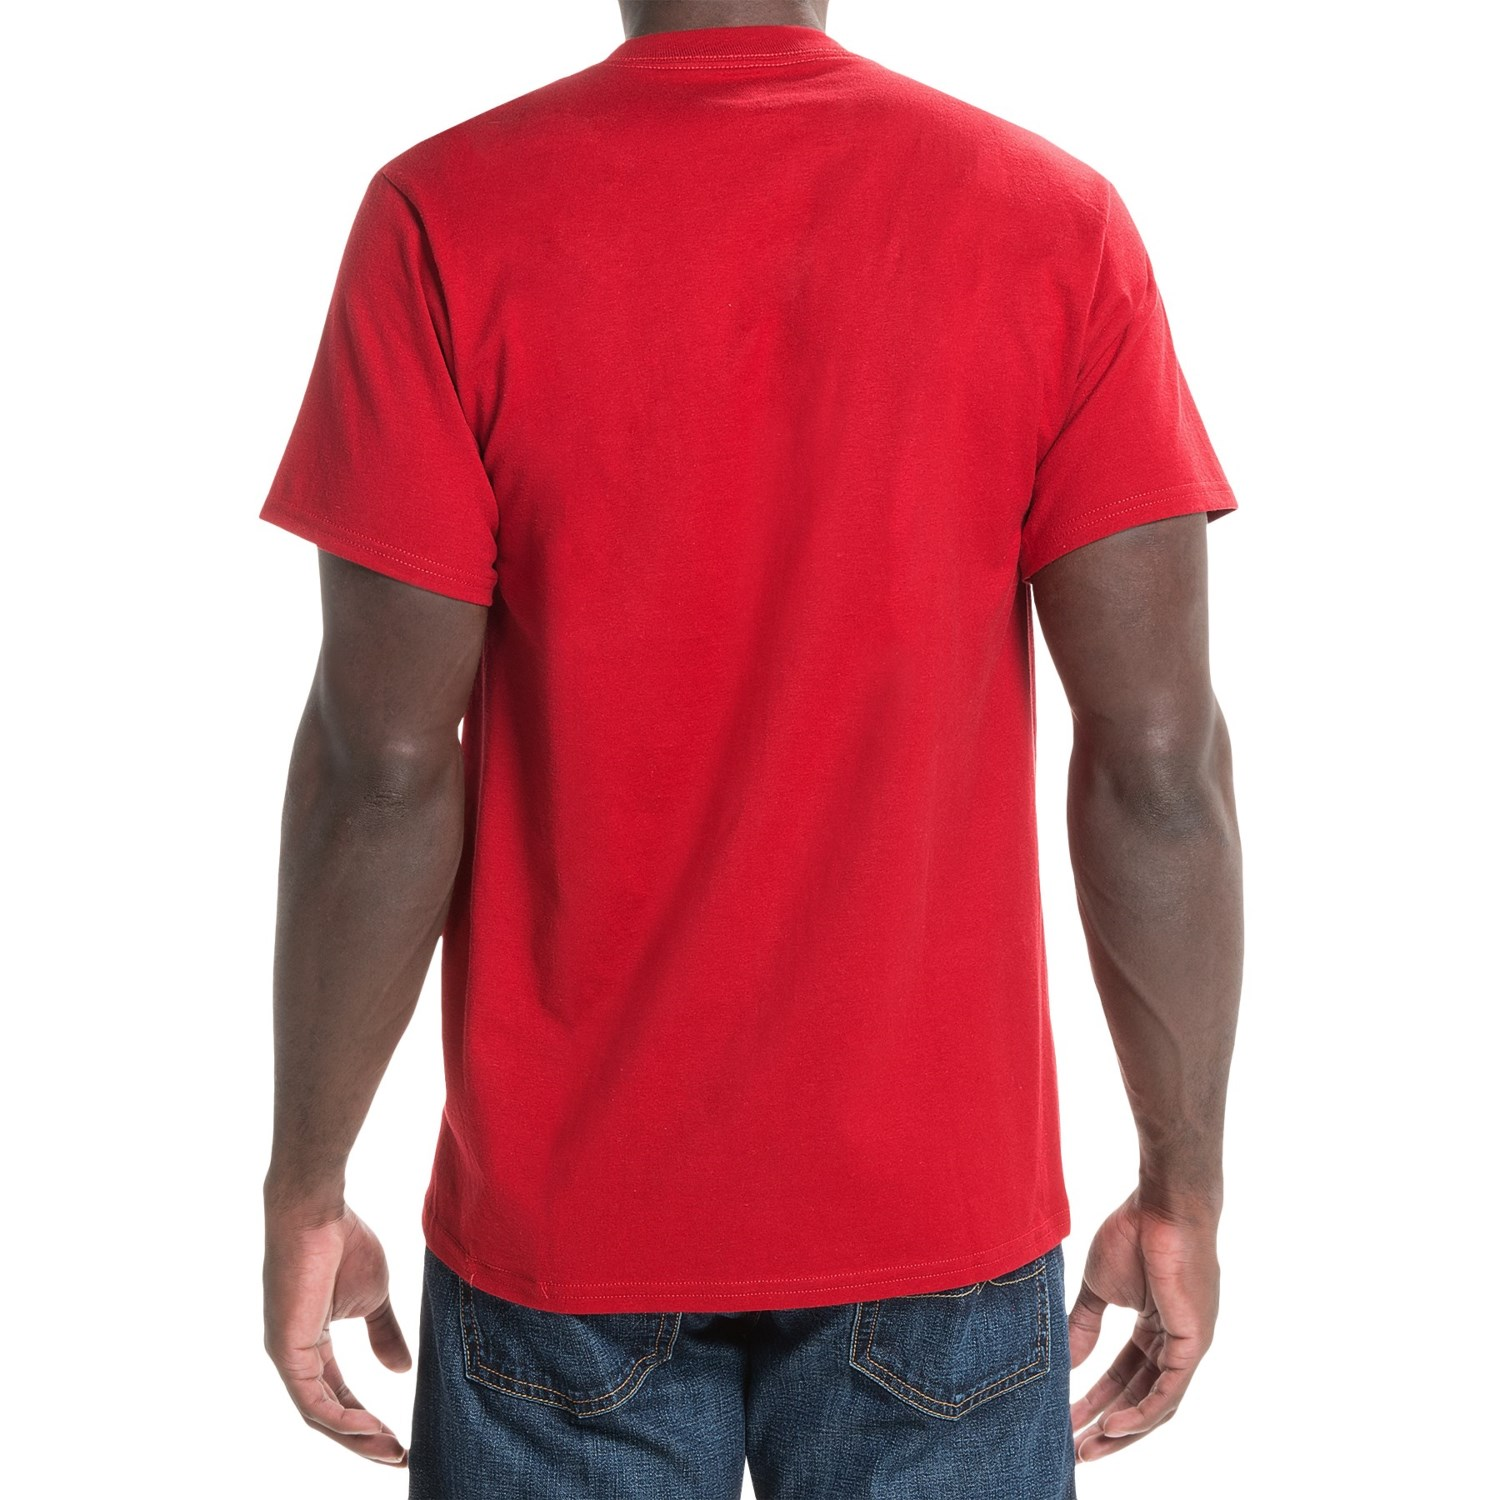 Hanes beefy t t shirt for men and women save 81 for Hanes beefy t custom shirts